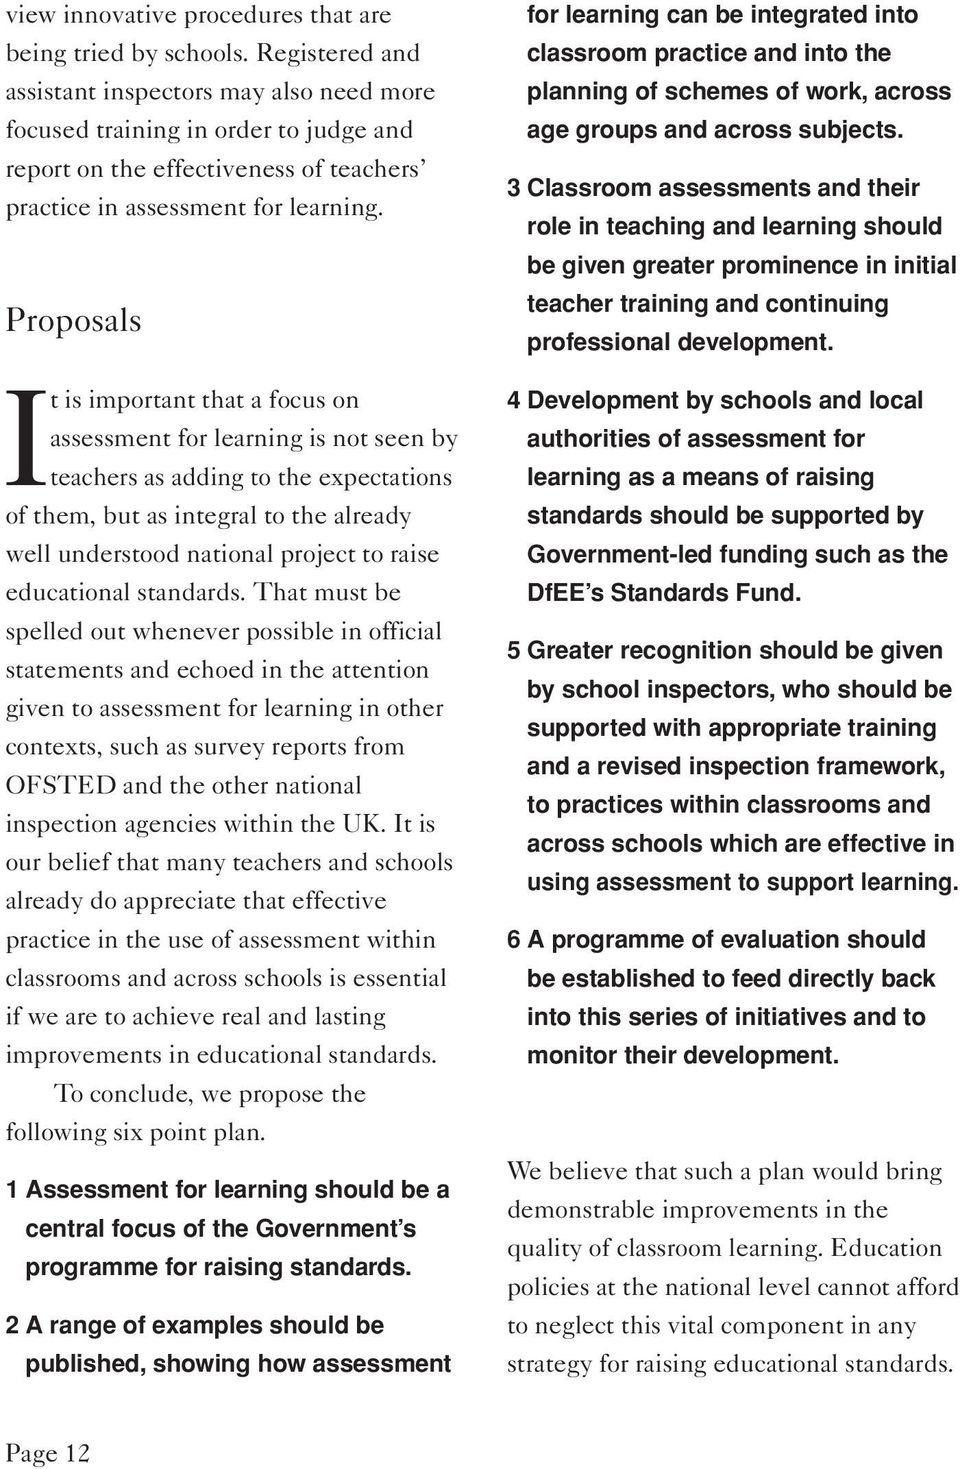 Proposals It is important that a focus on assessment for learning is not seen by teachers as adding to the expectations of them, but as integral to the already well understood national project to